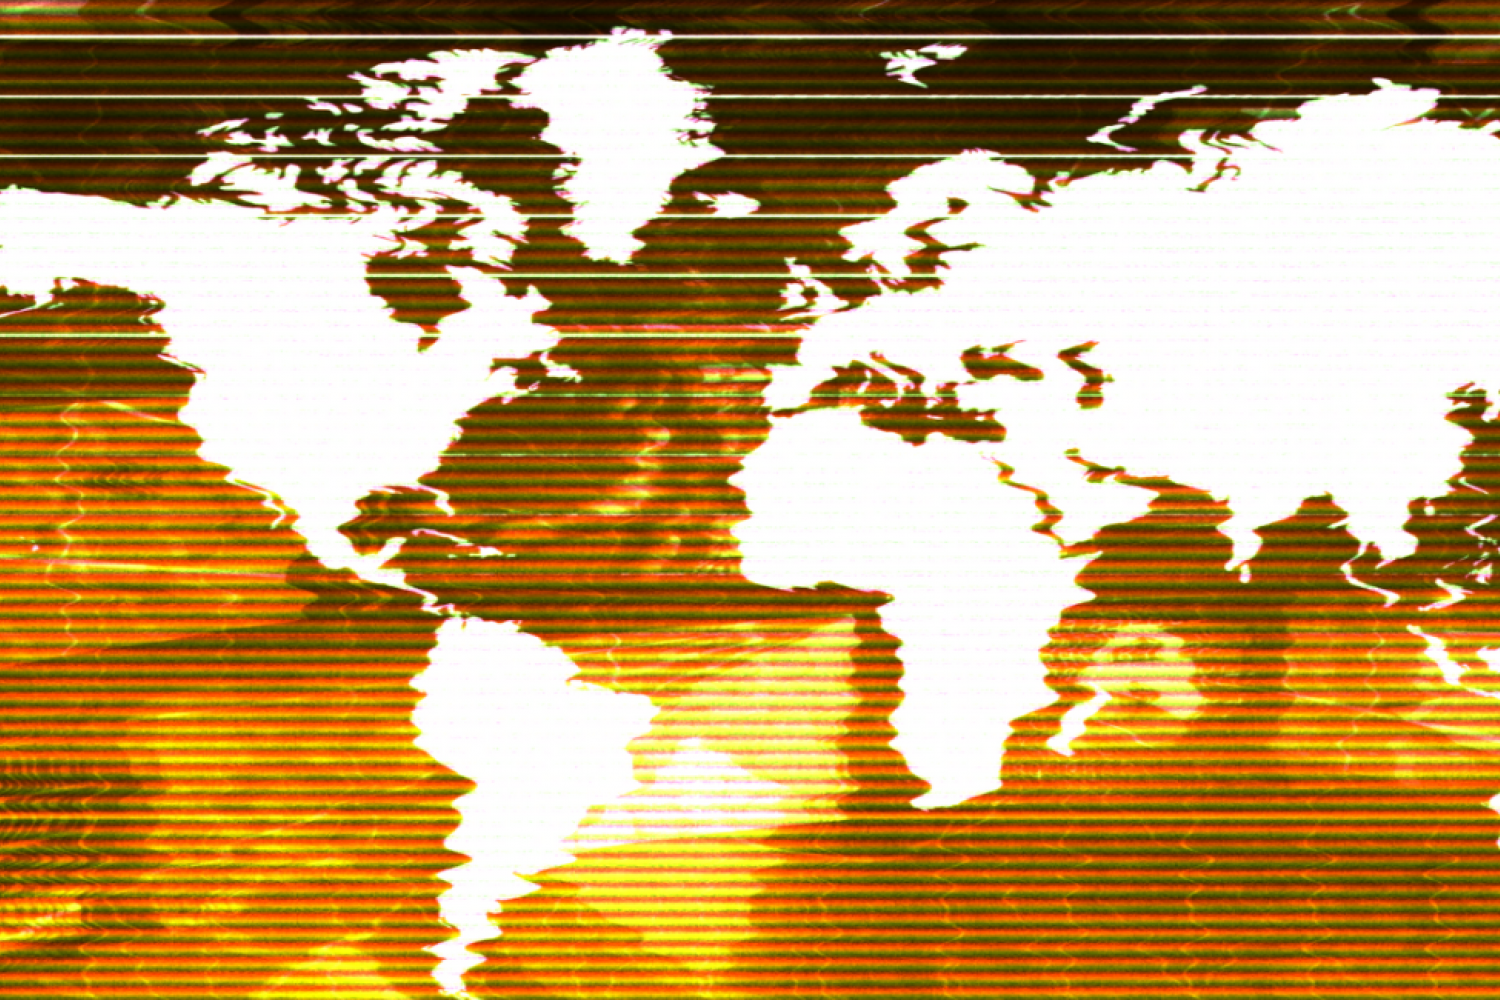 A pixelated and blurred map of the world to represent the complexities of international society.